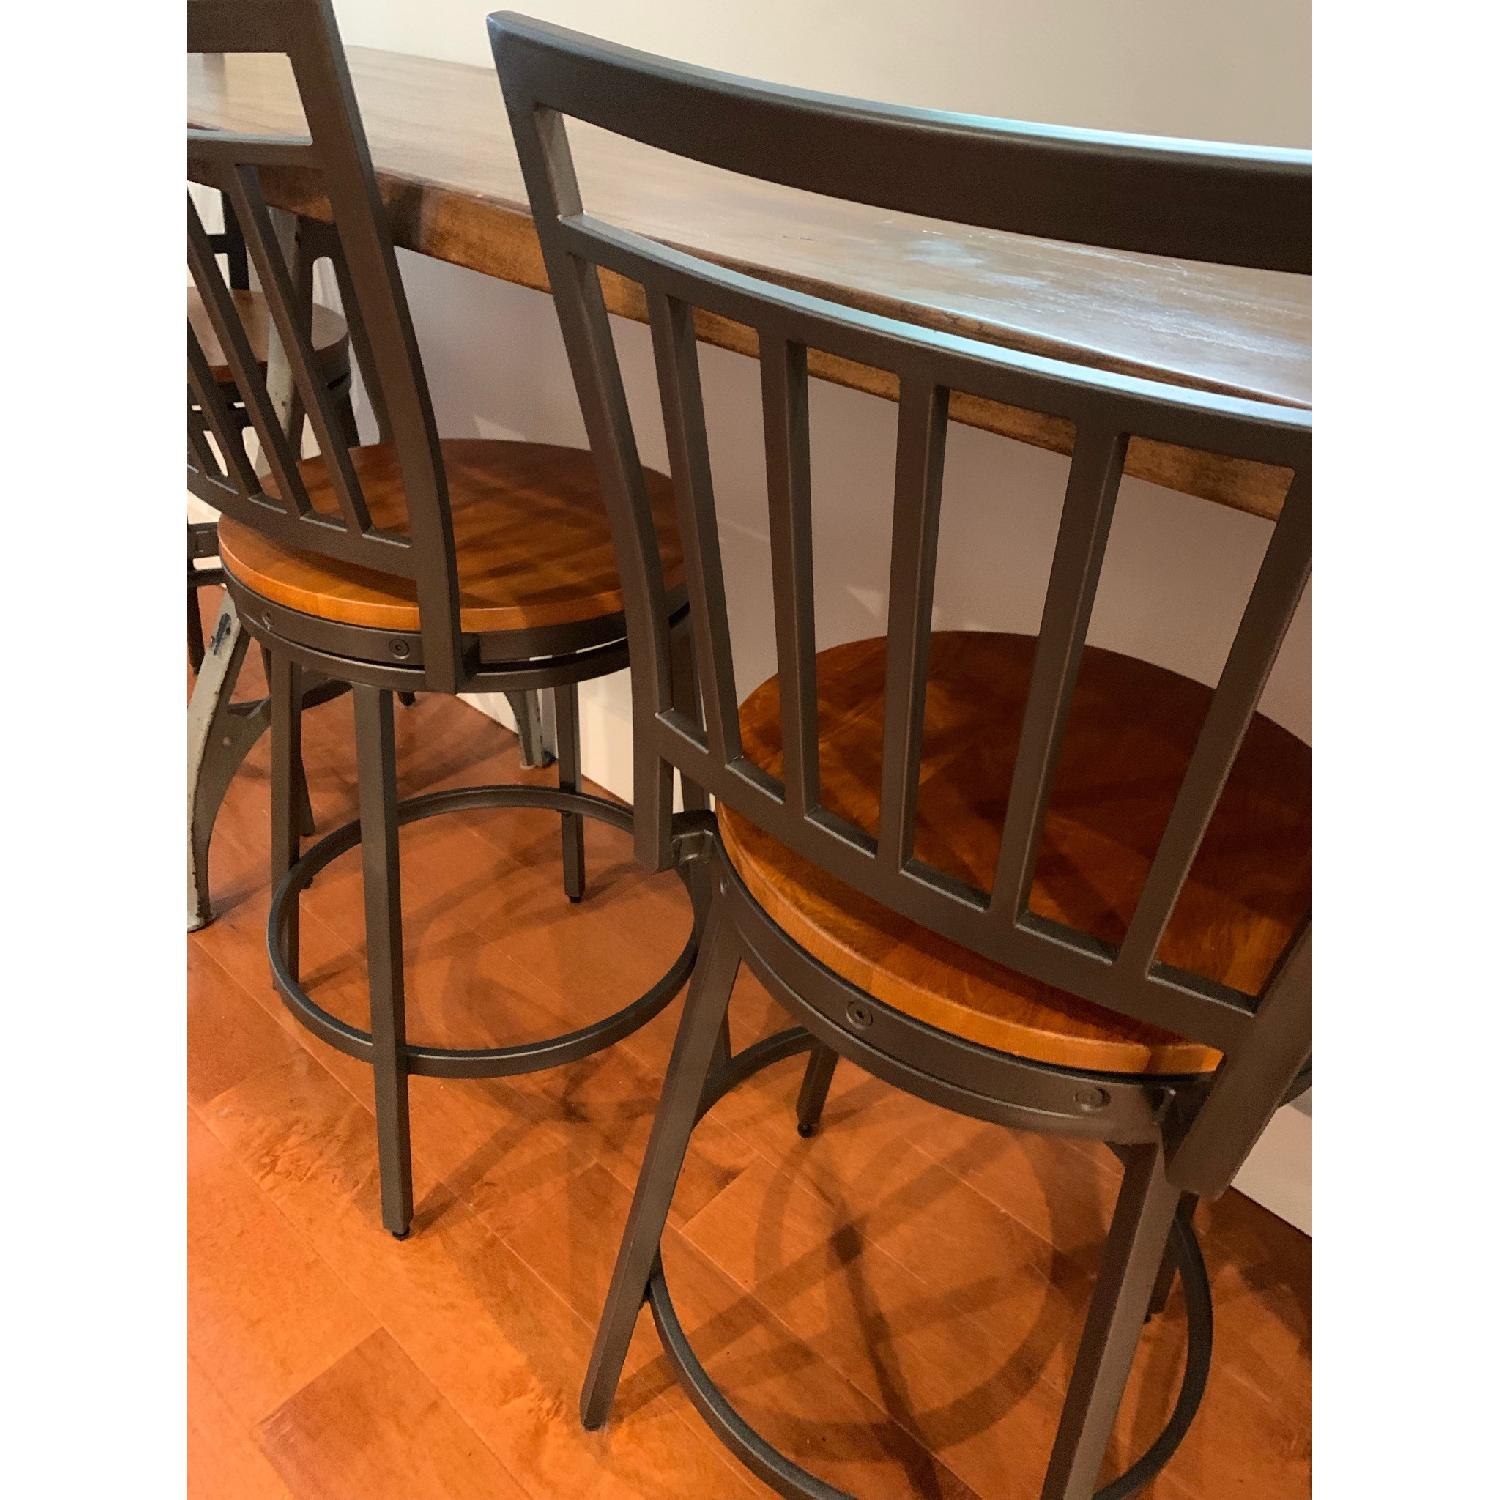 Industrial Wooden Table w/ 4 Chairs - image-2